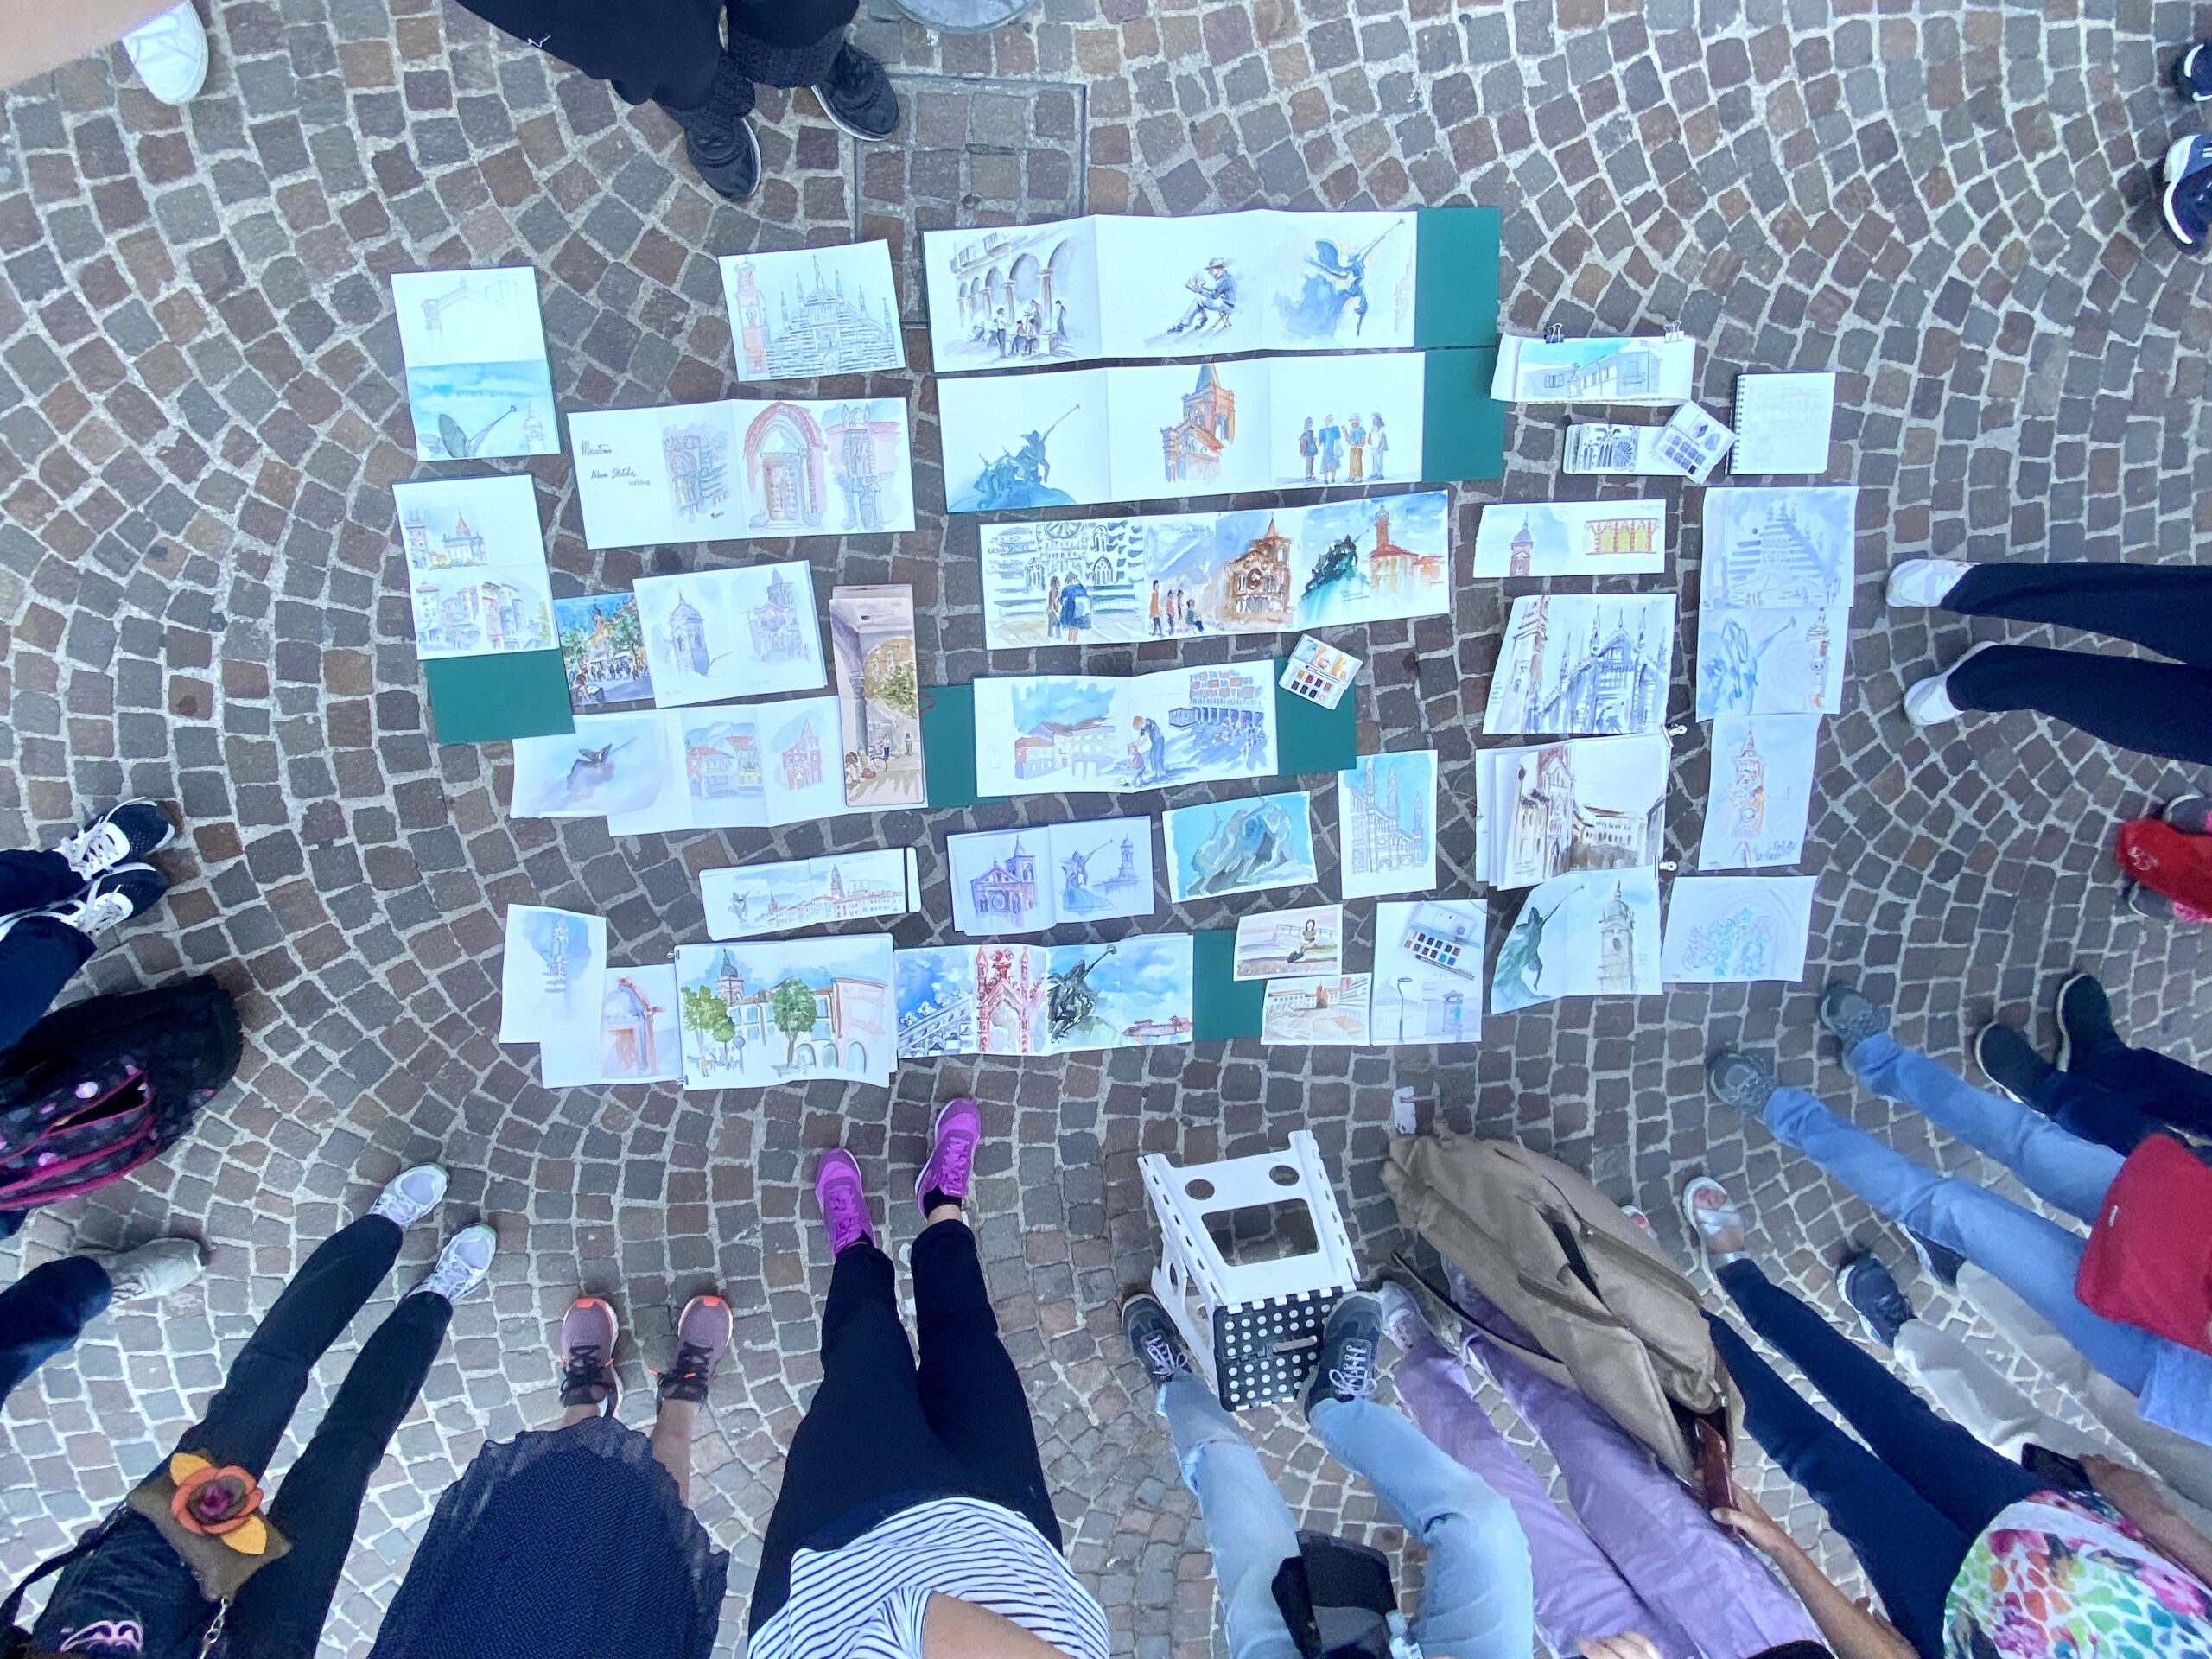 Sketches by the group in Monza